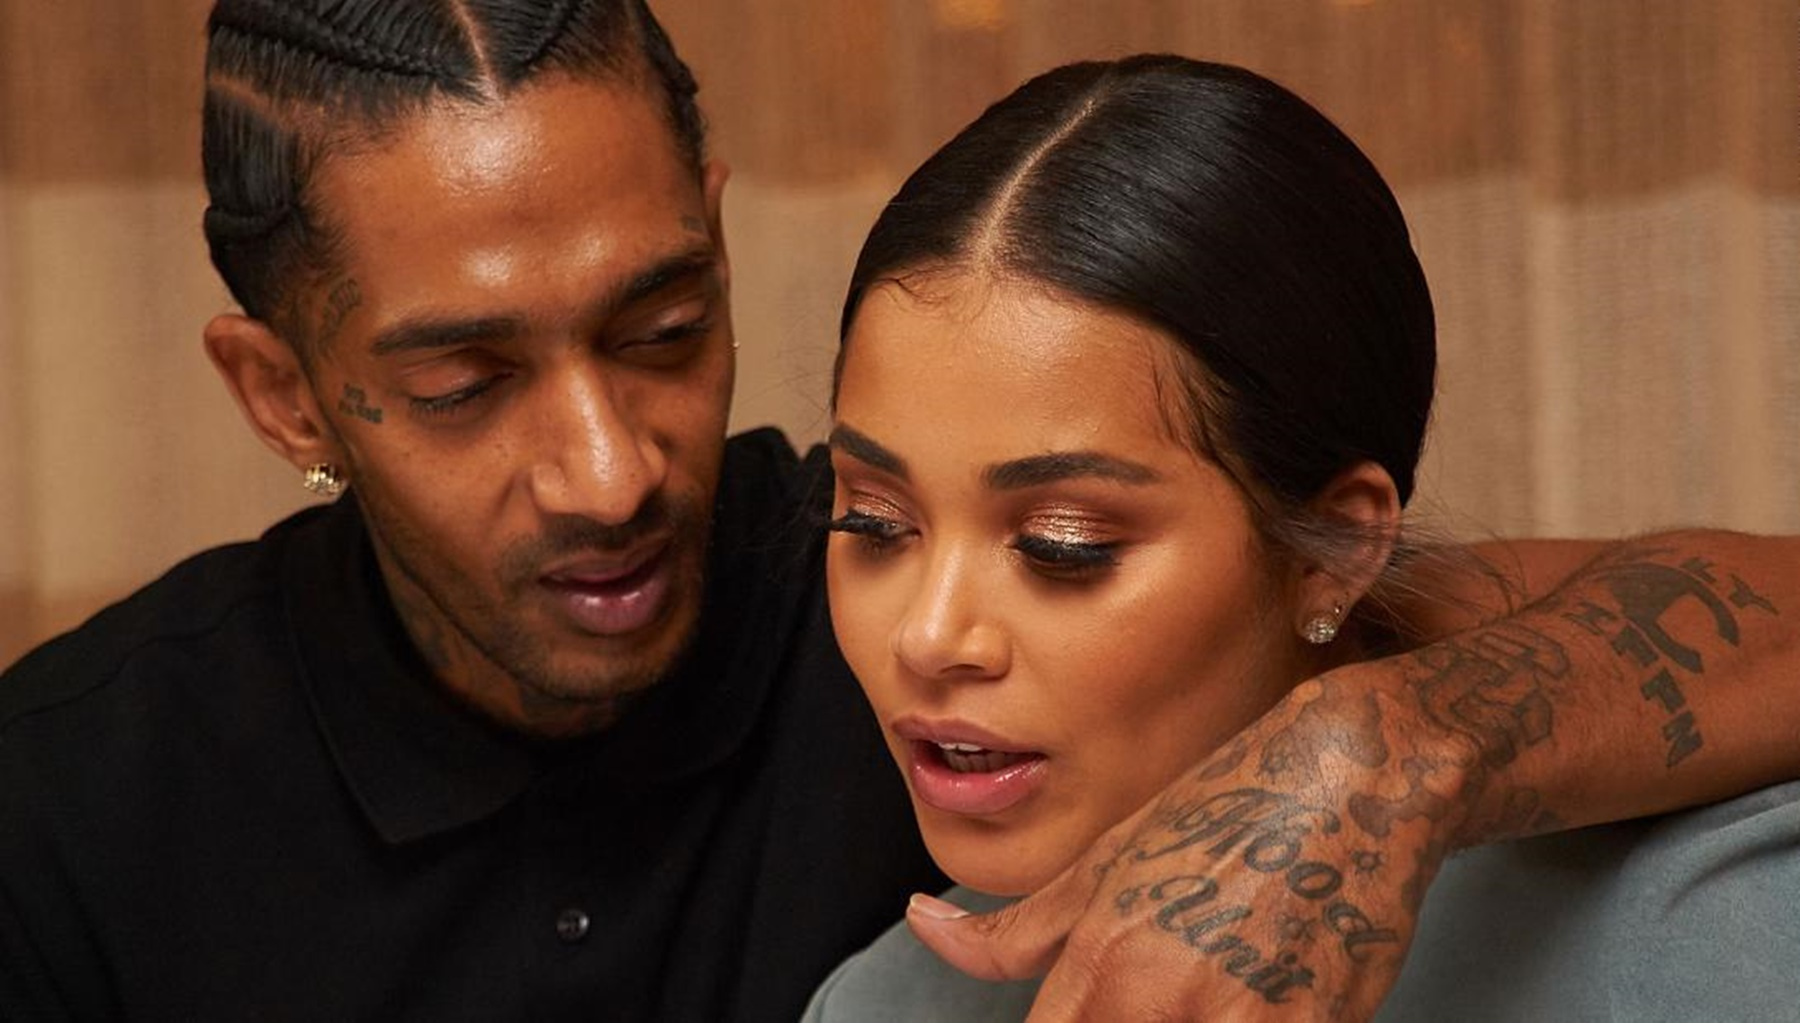 lauren-london-shares-intimate-video-with-nipsey-hussle-featuring-a-beyonce-song-on-the-background-fans-are-heartbroken-all-over-again